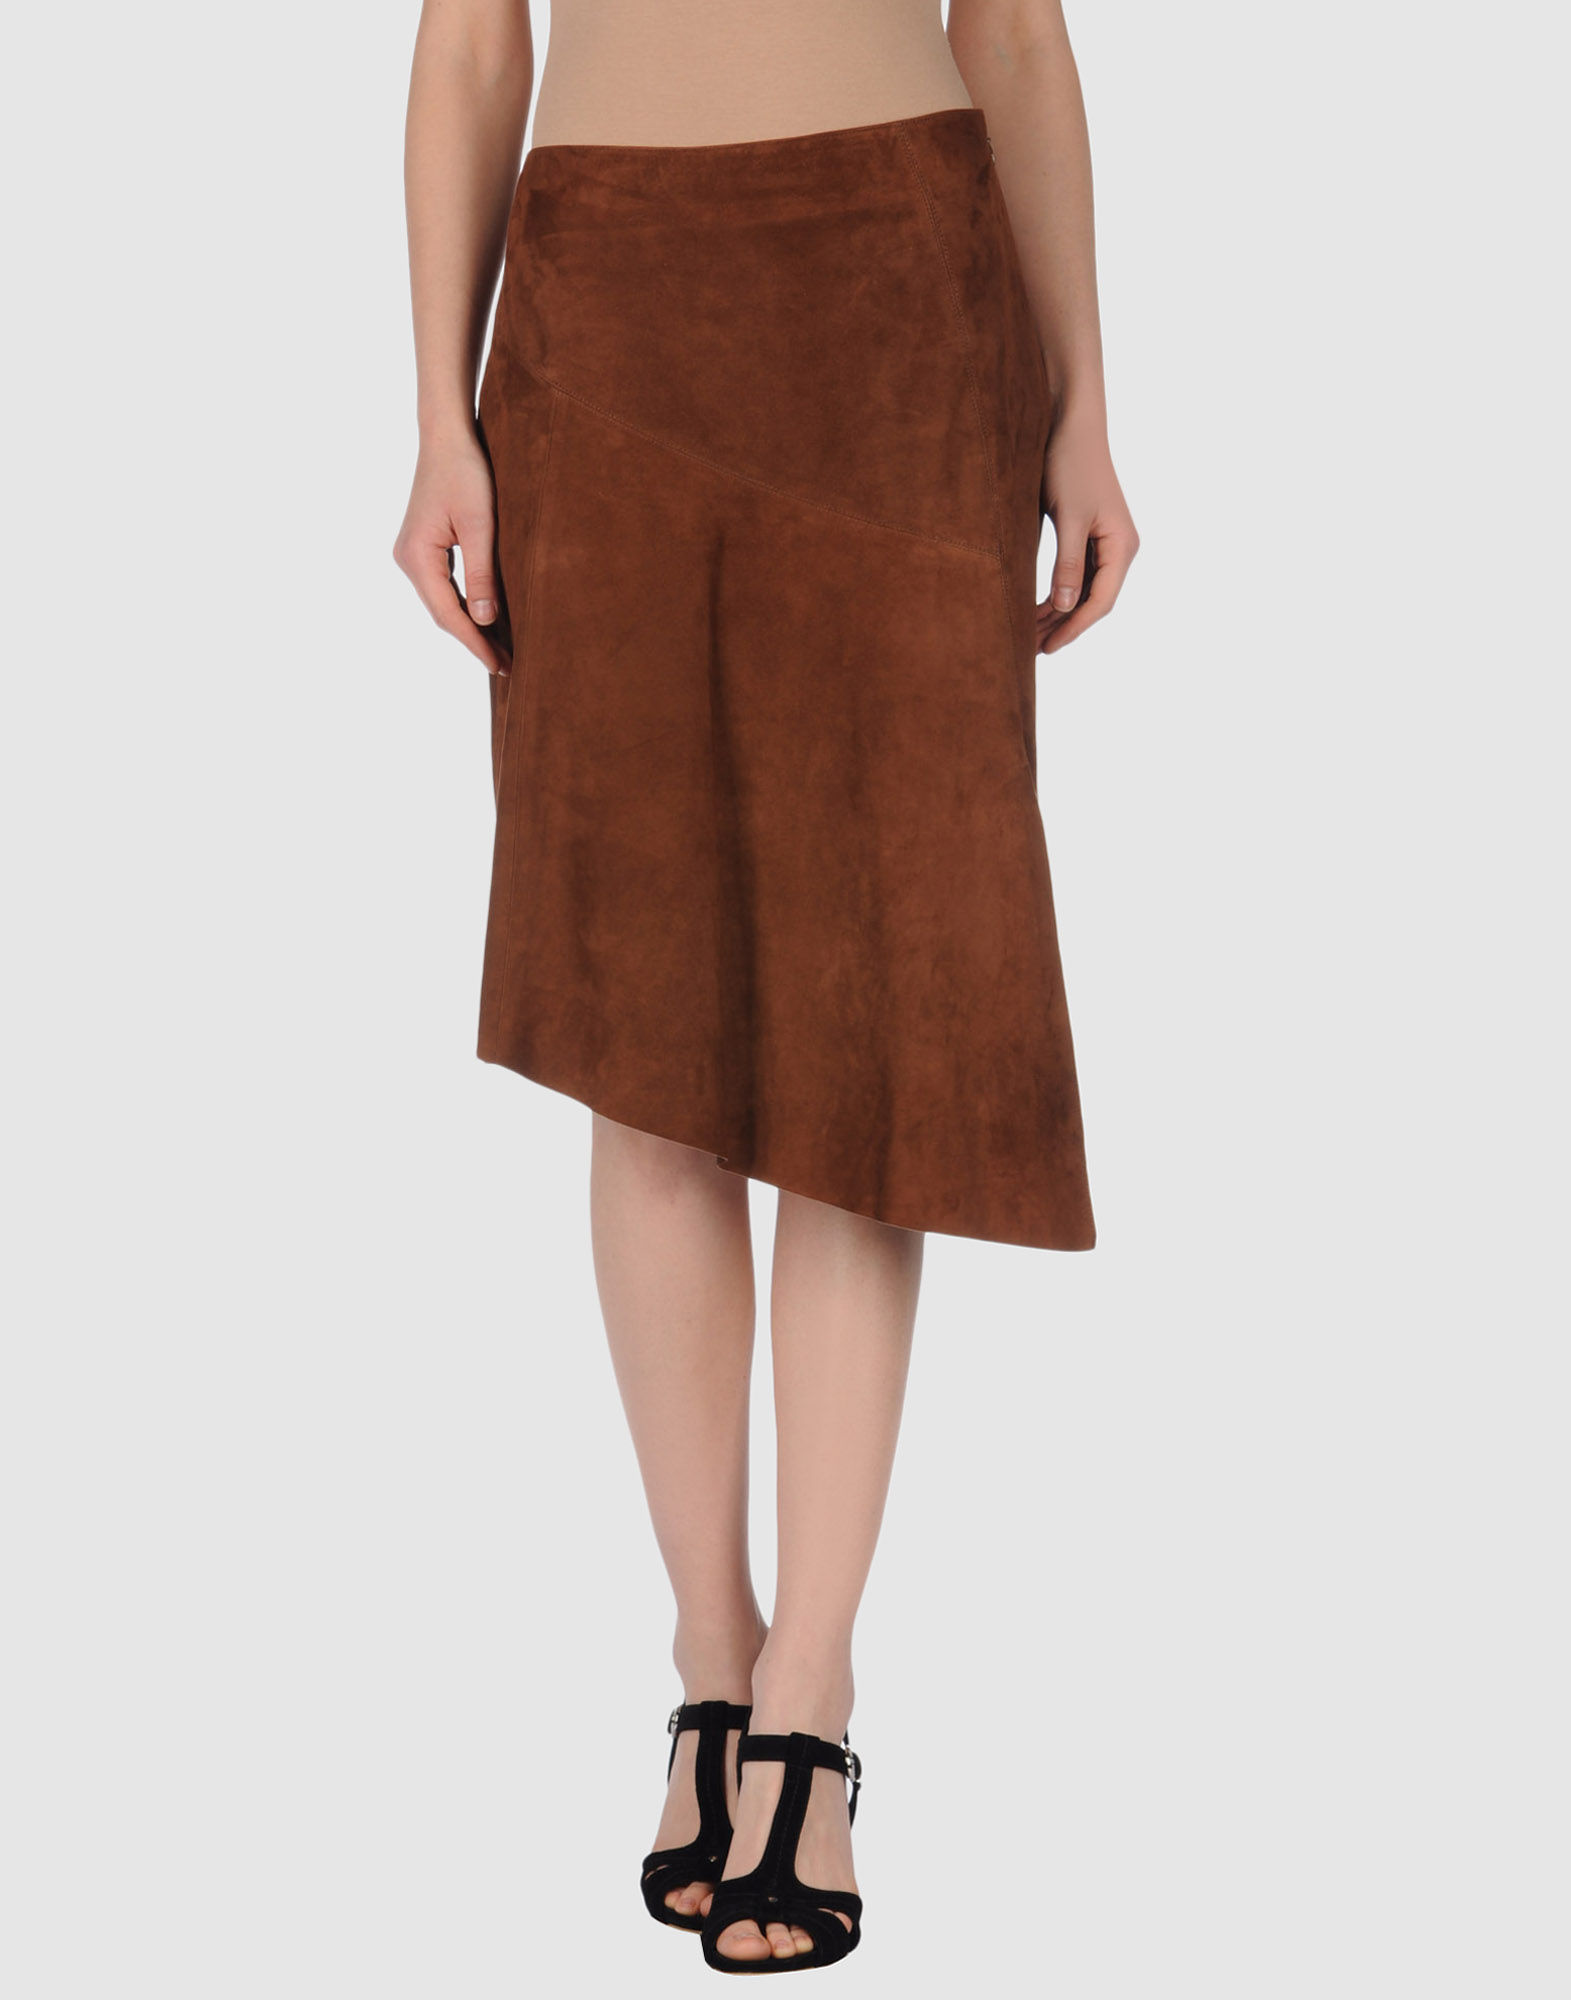 michael kors leather skirt in brown save 57 lyst